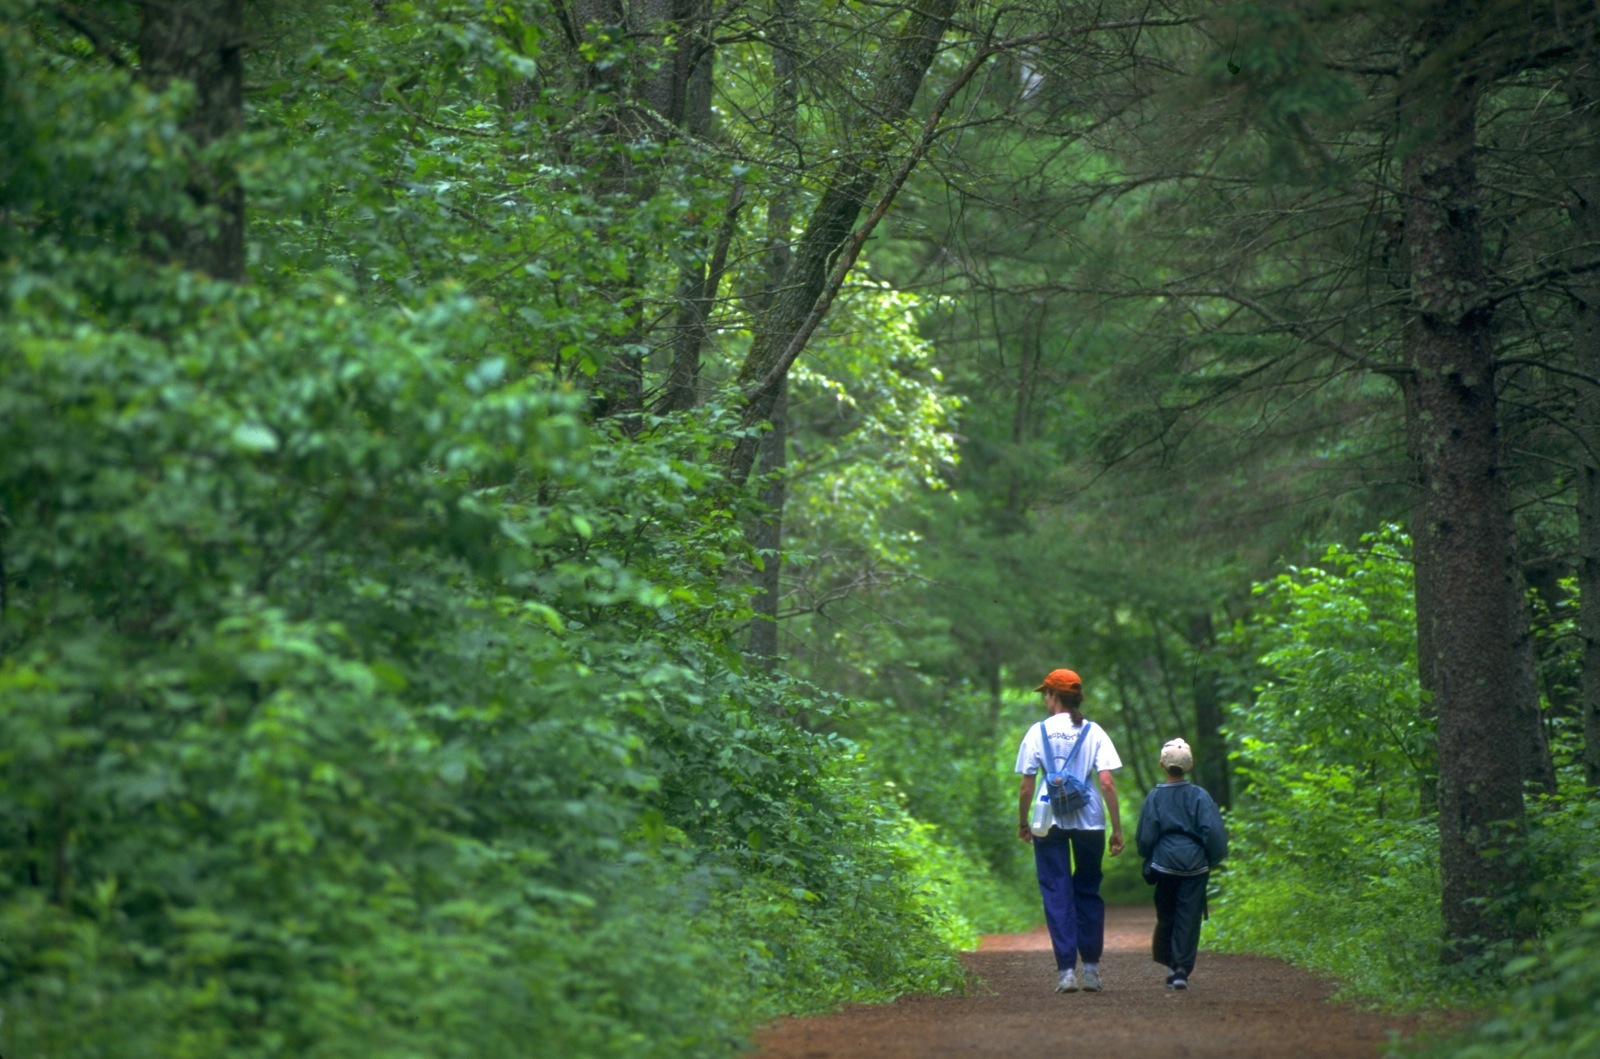 A mother and her son take a walk down a forested lane in Itasca State Park near Lake Itasca.